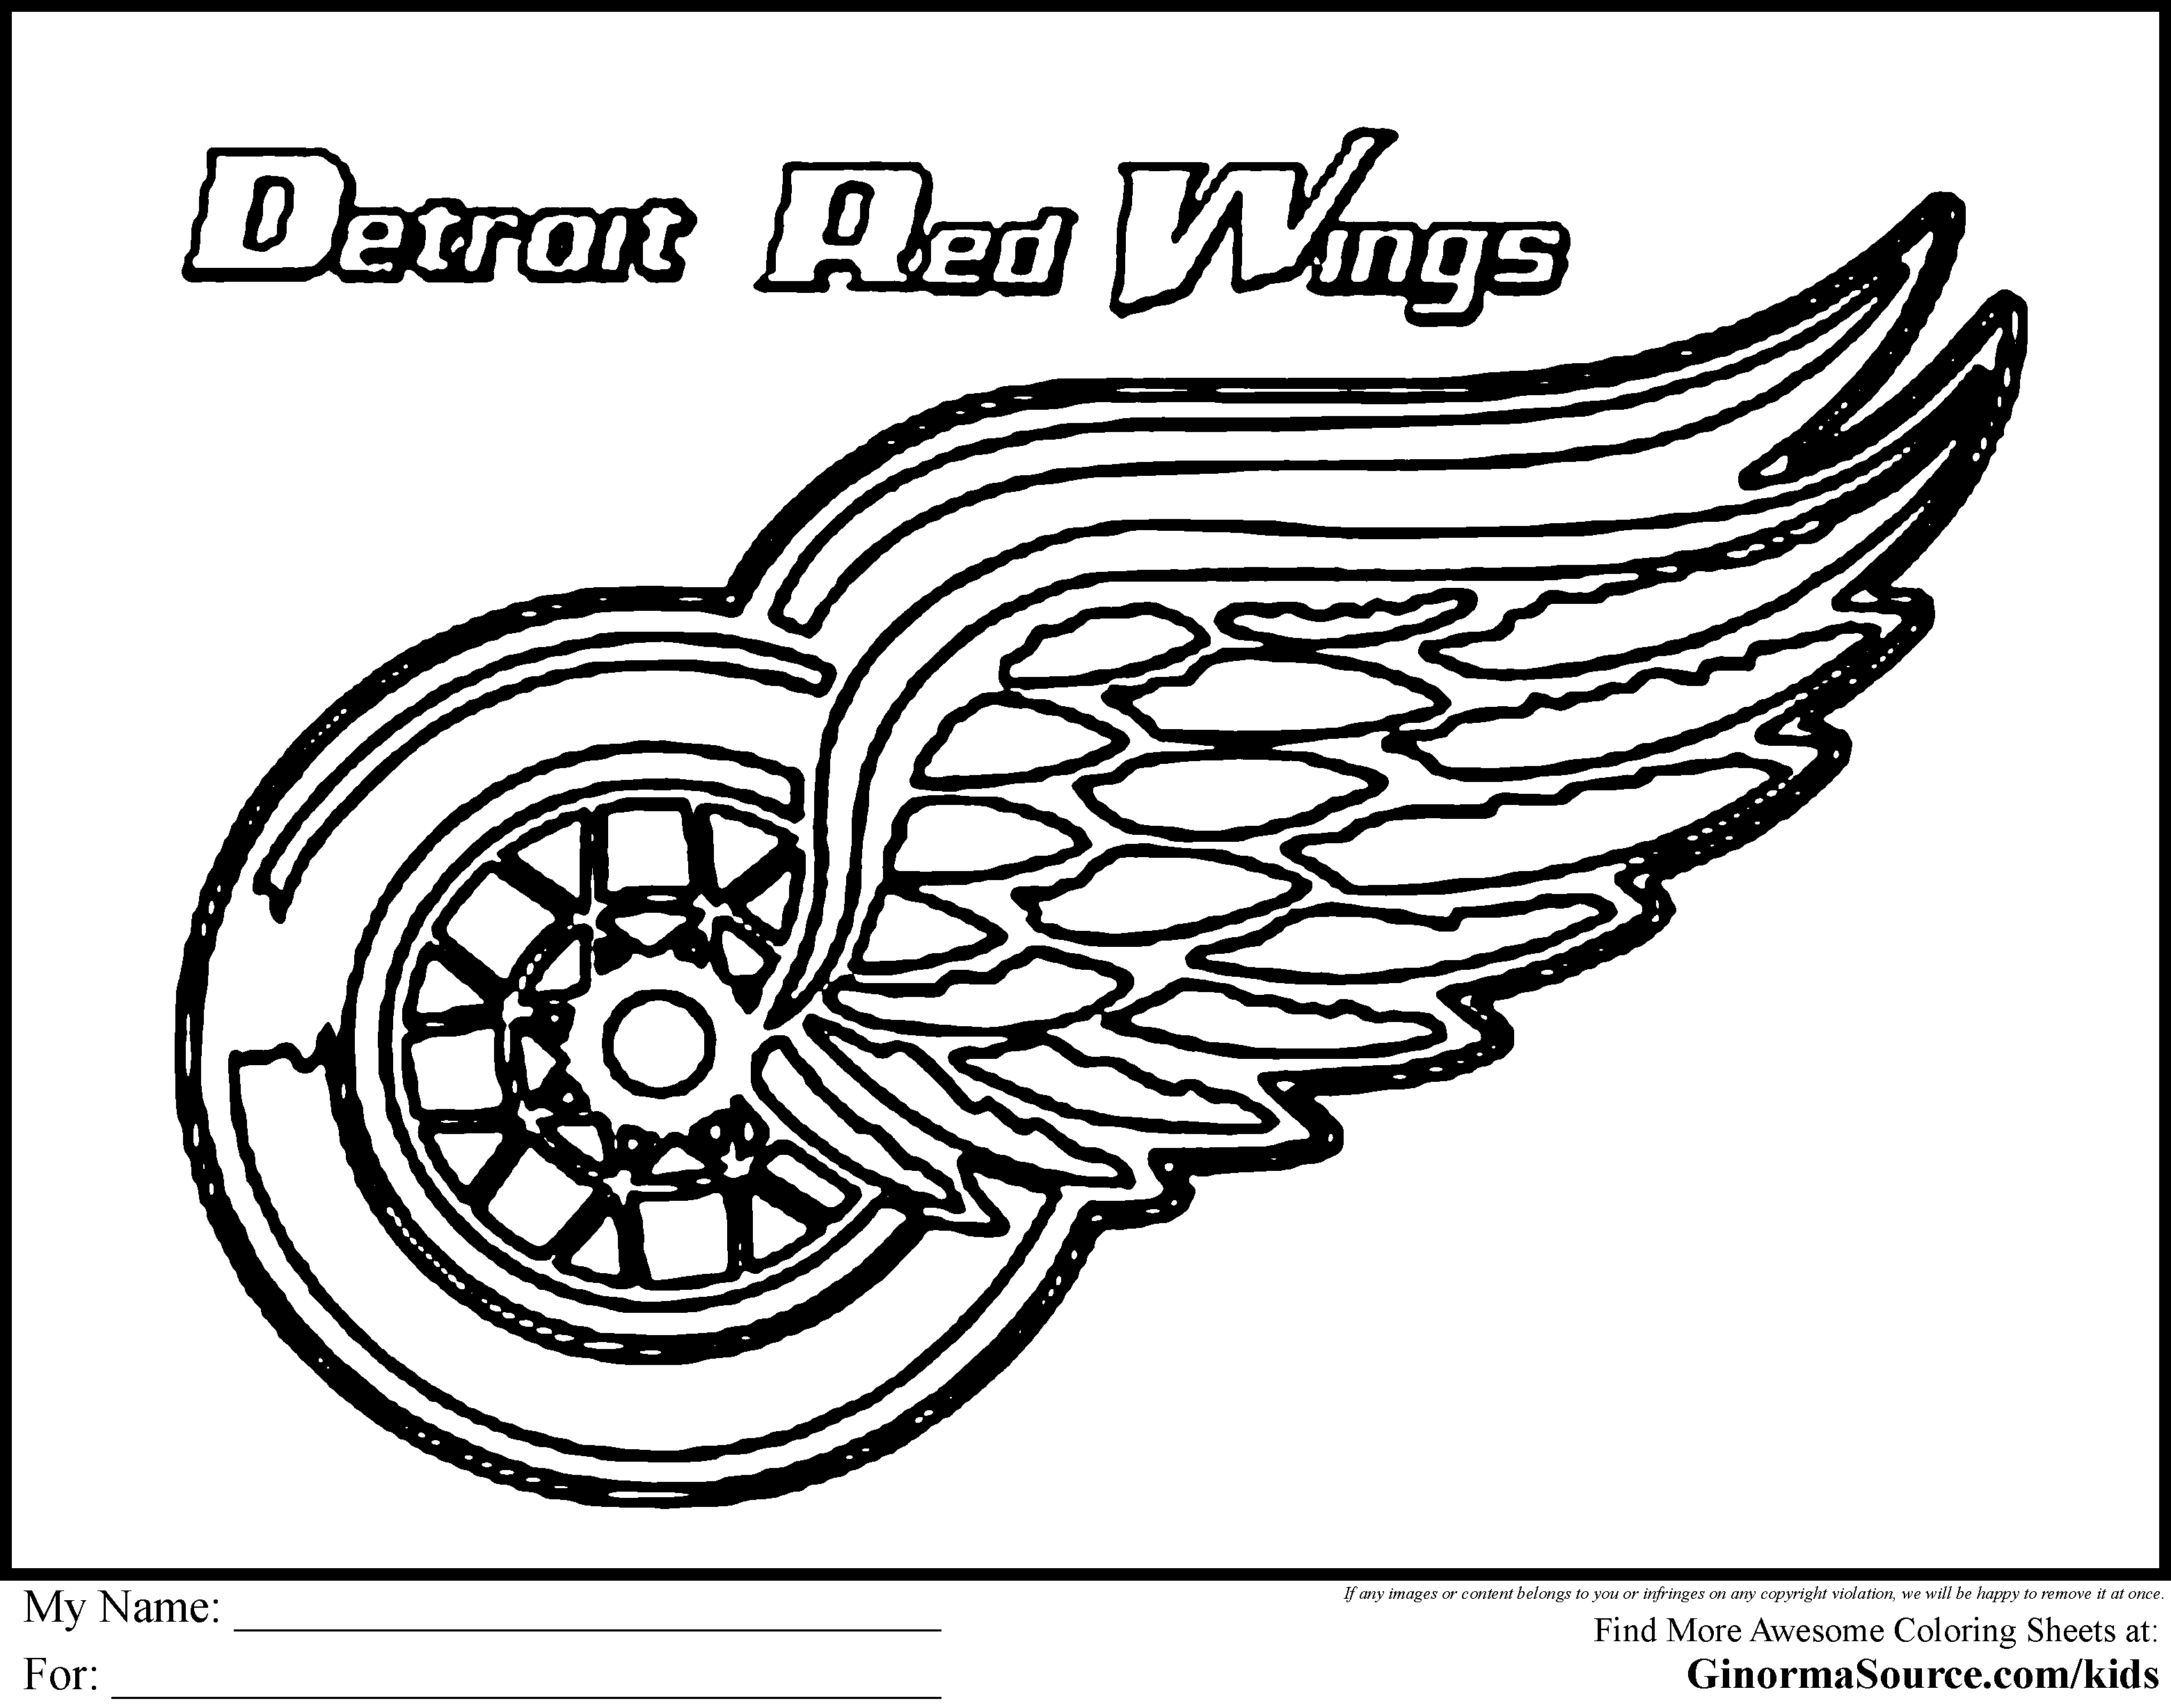 red wings hockey coloring pages tagged with detroit tigers coloring pages